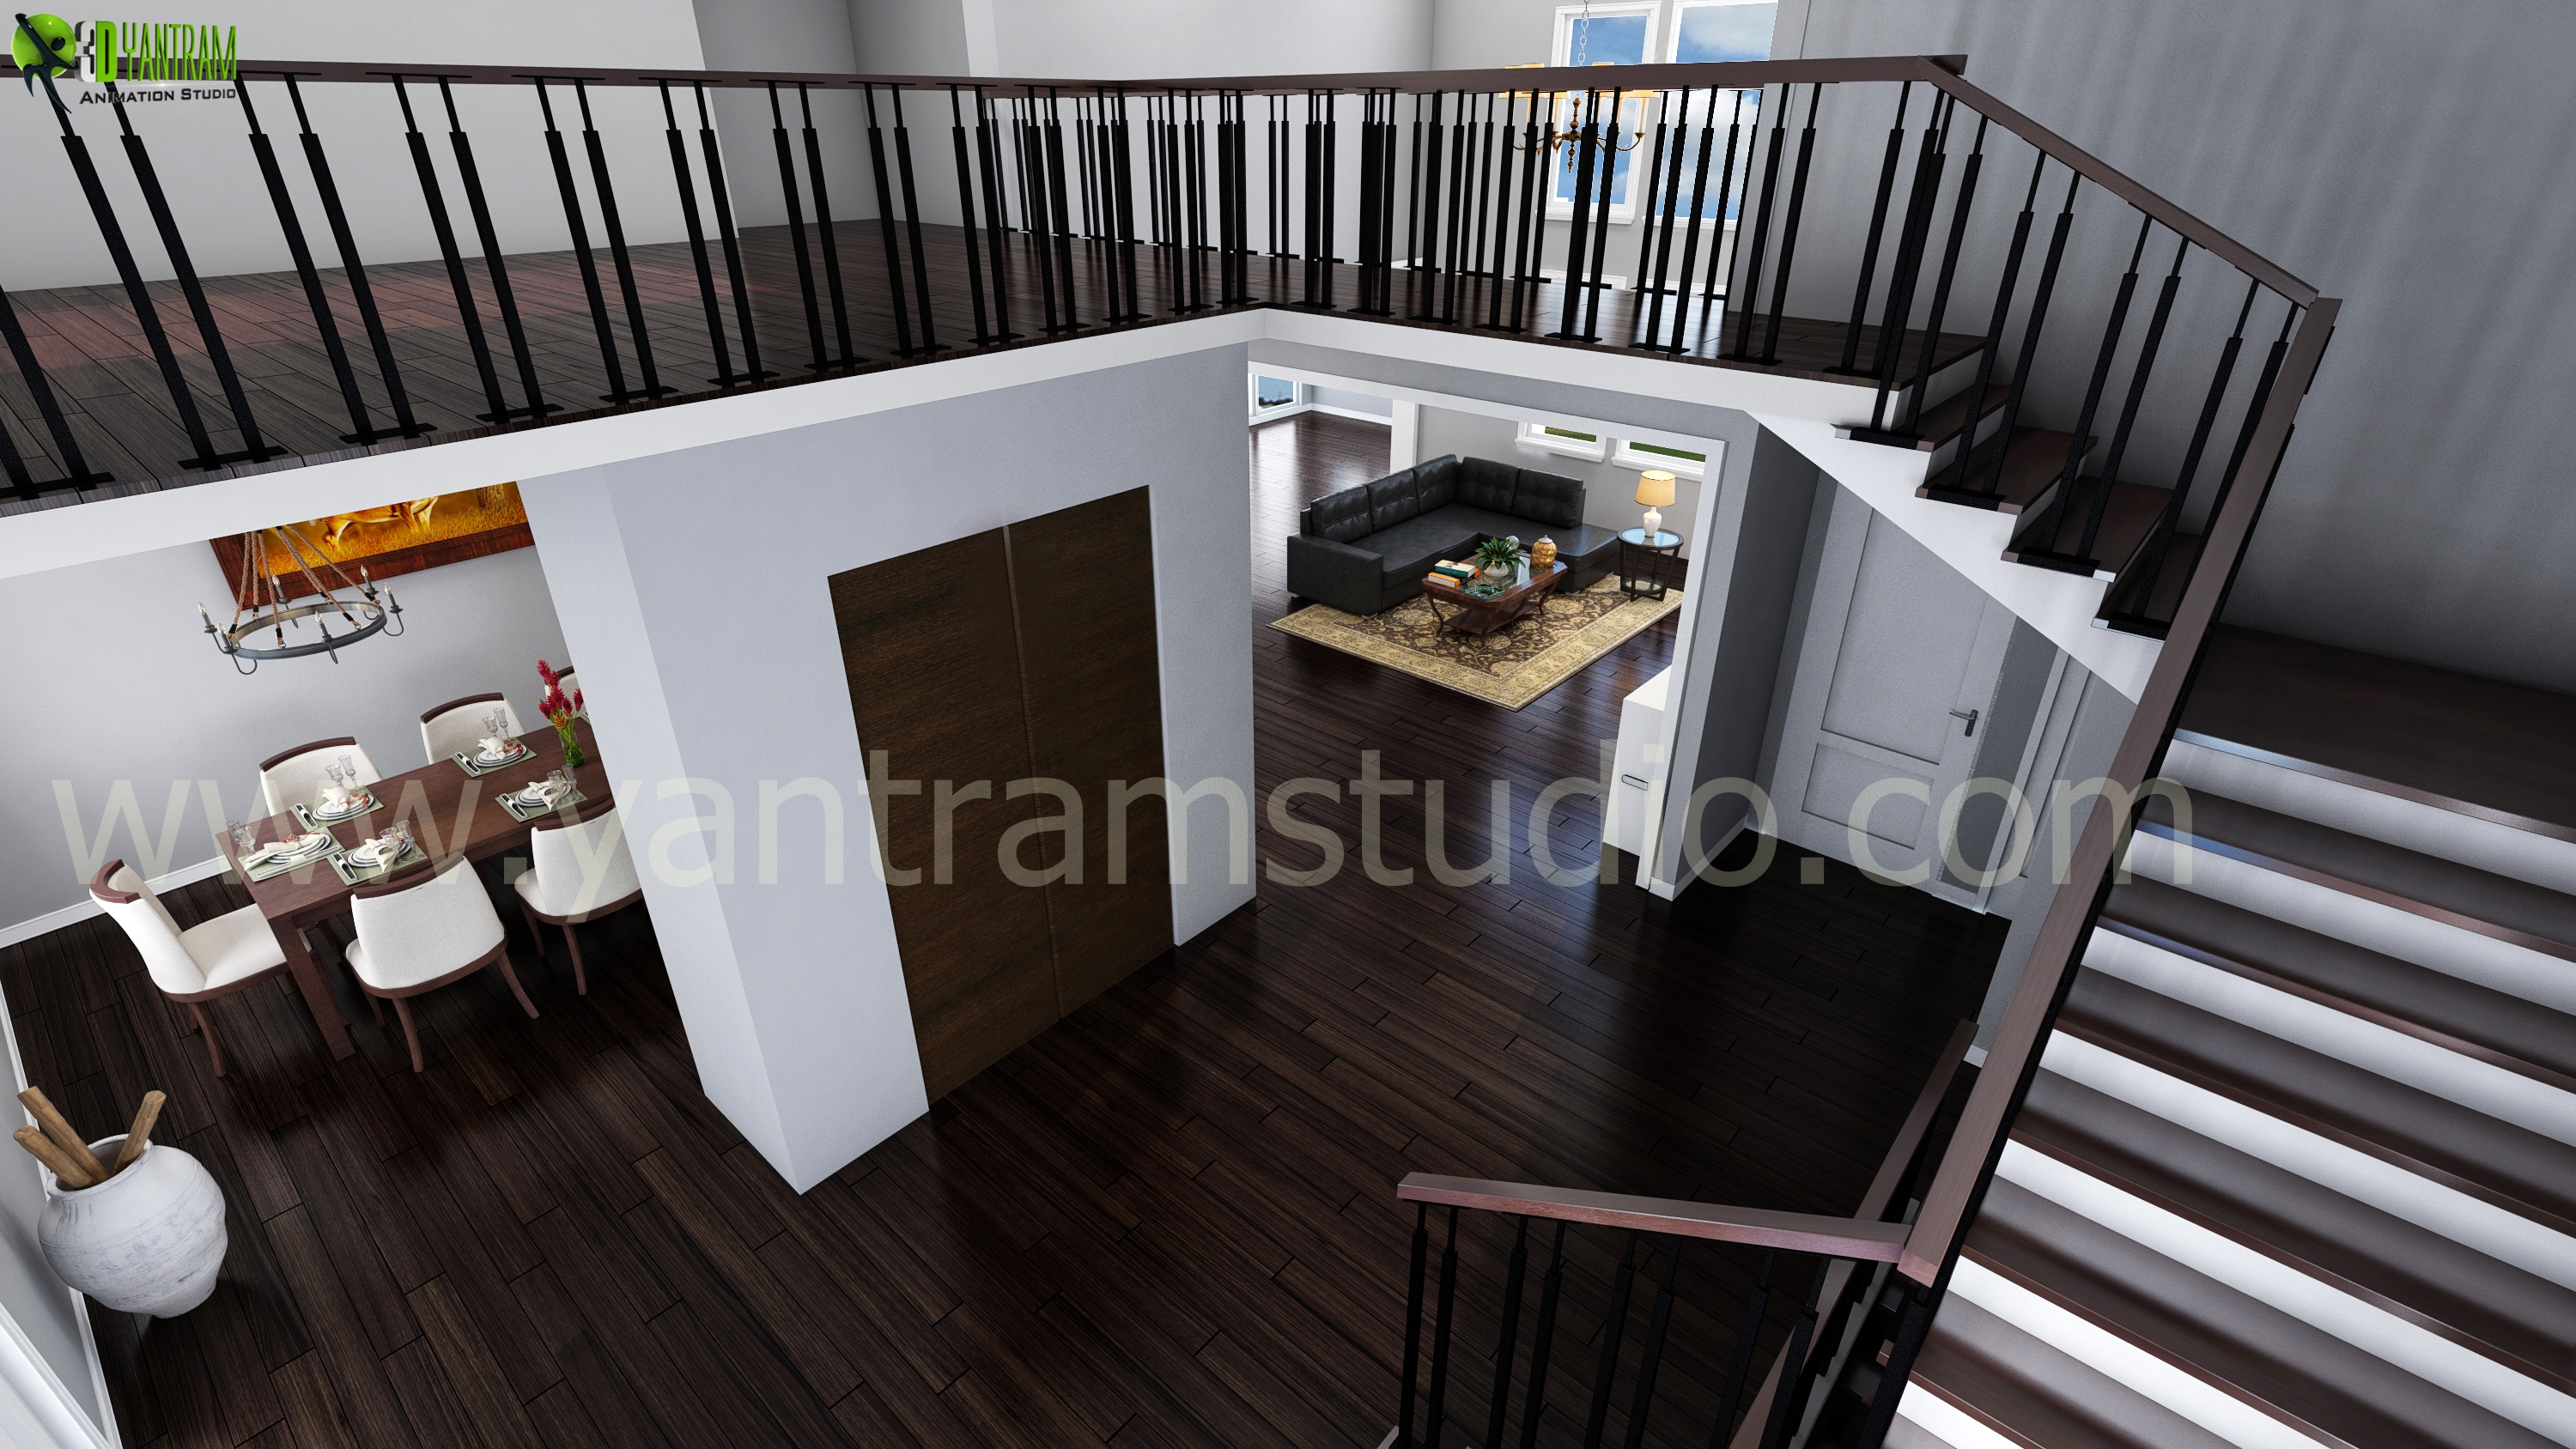 Living Room Design With Stairs: Living Room Interior Stairs Design View